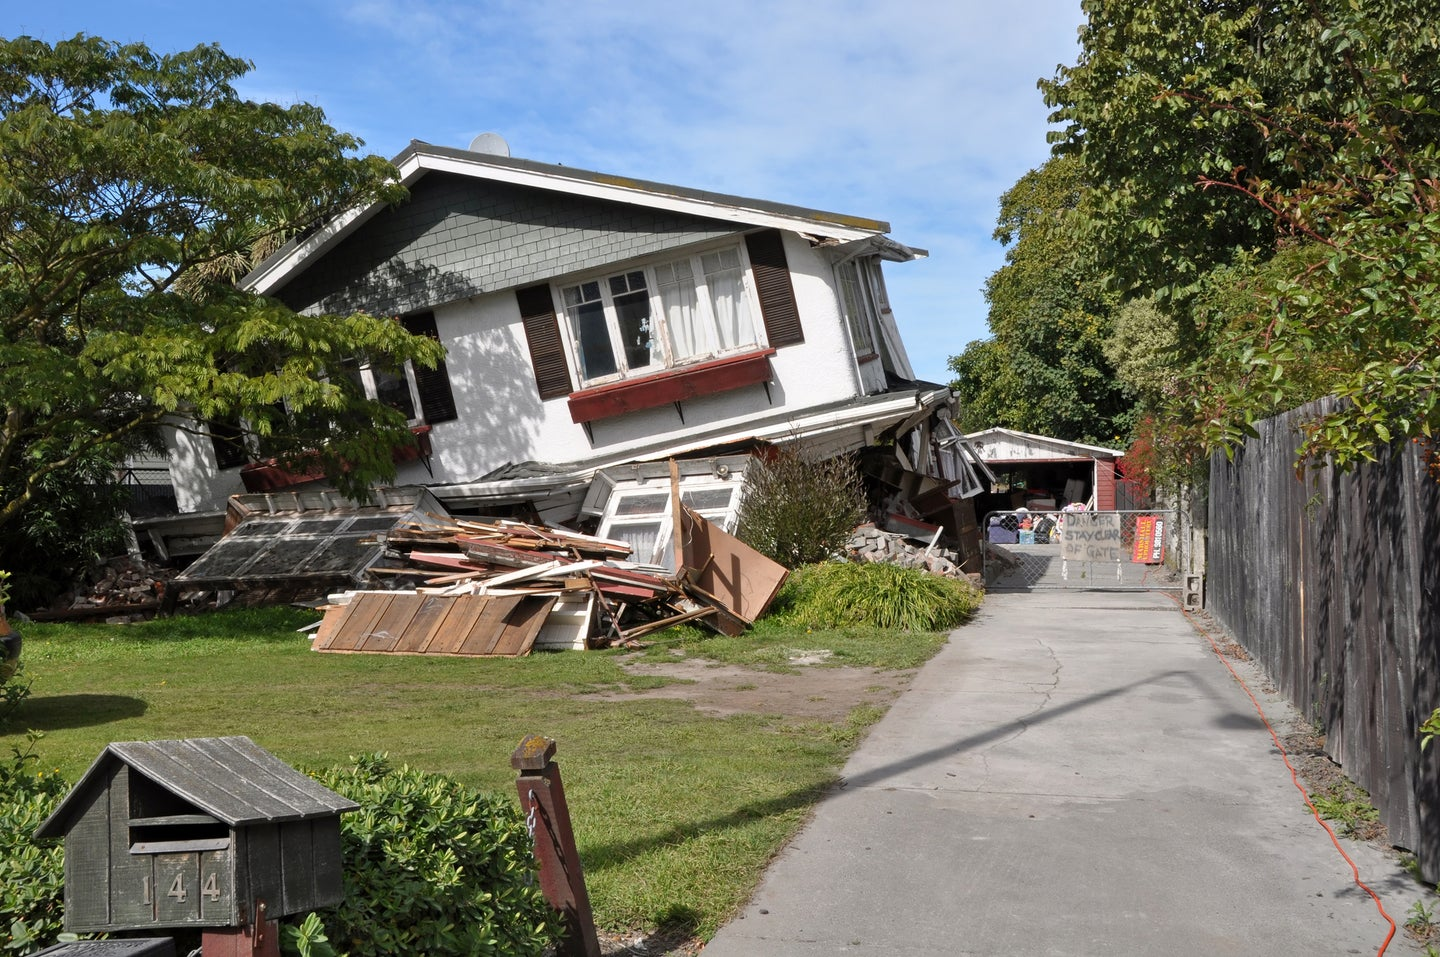 A 7.1 magnitude earthquake in Christchurch, New Zealand, destroyed homes and lives.